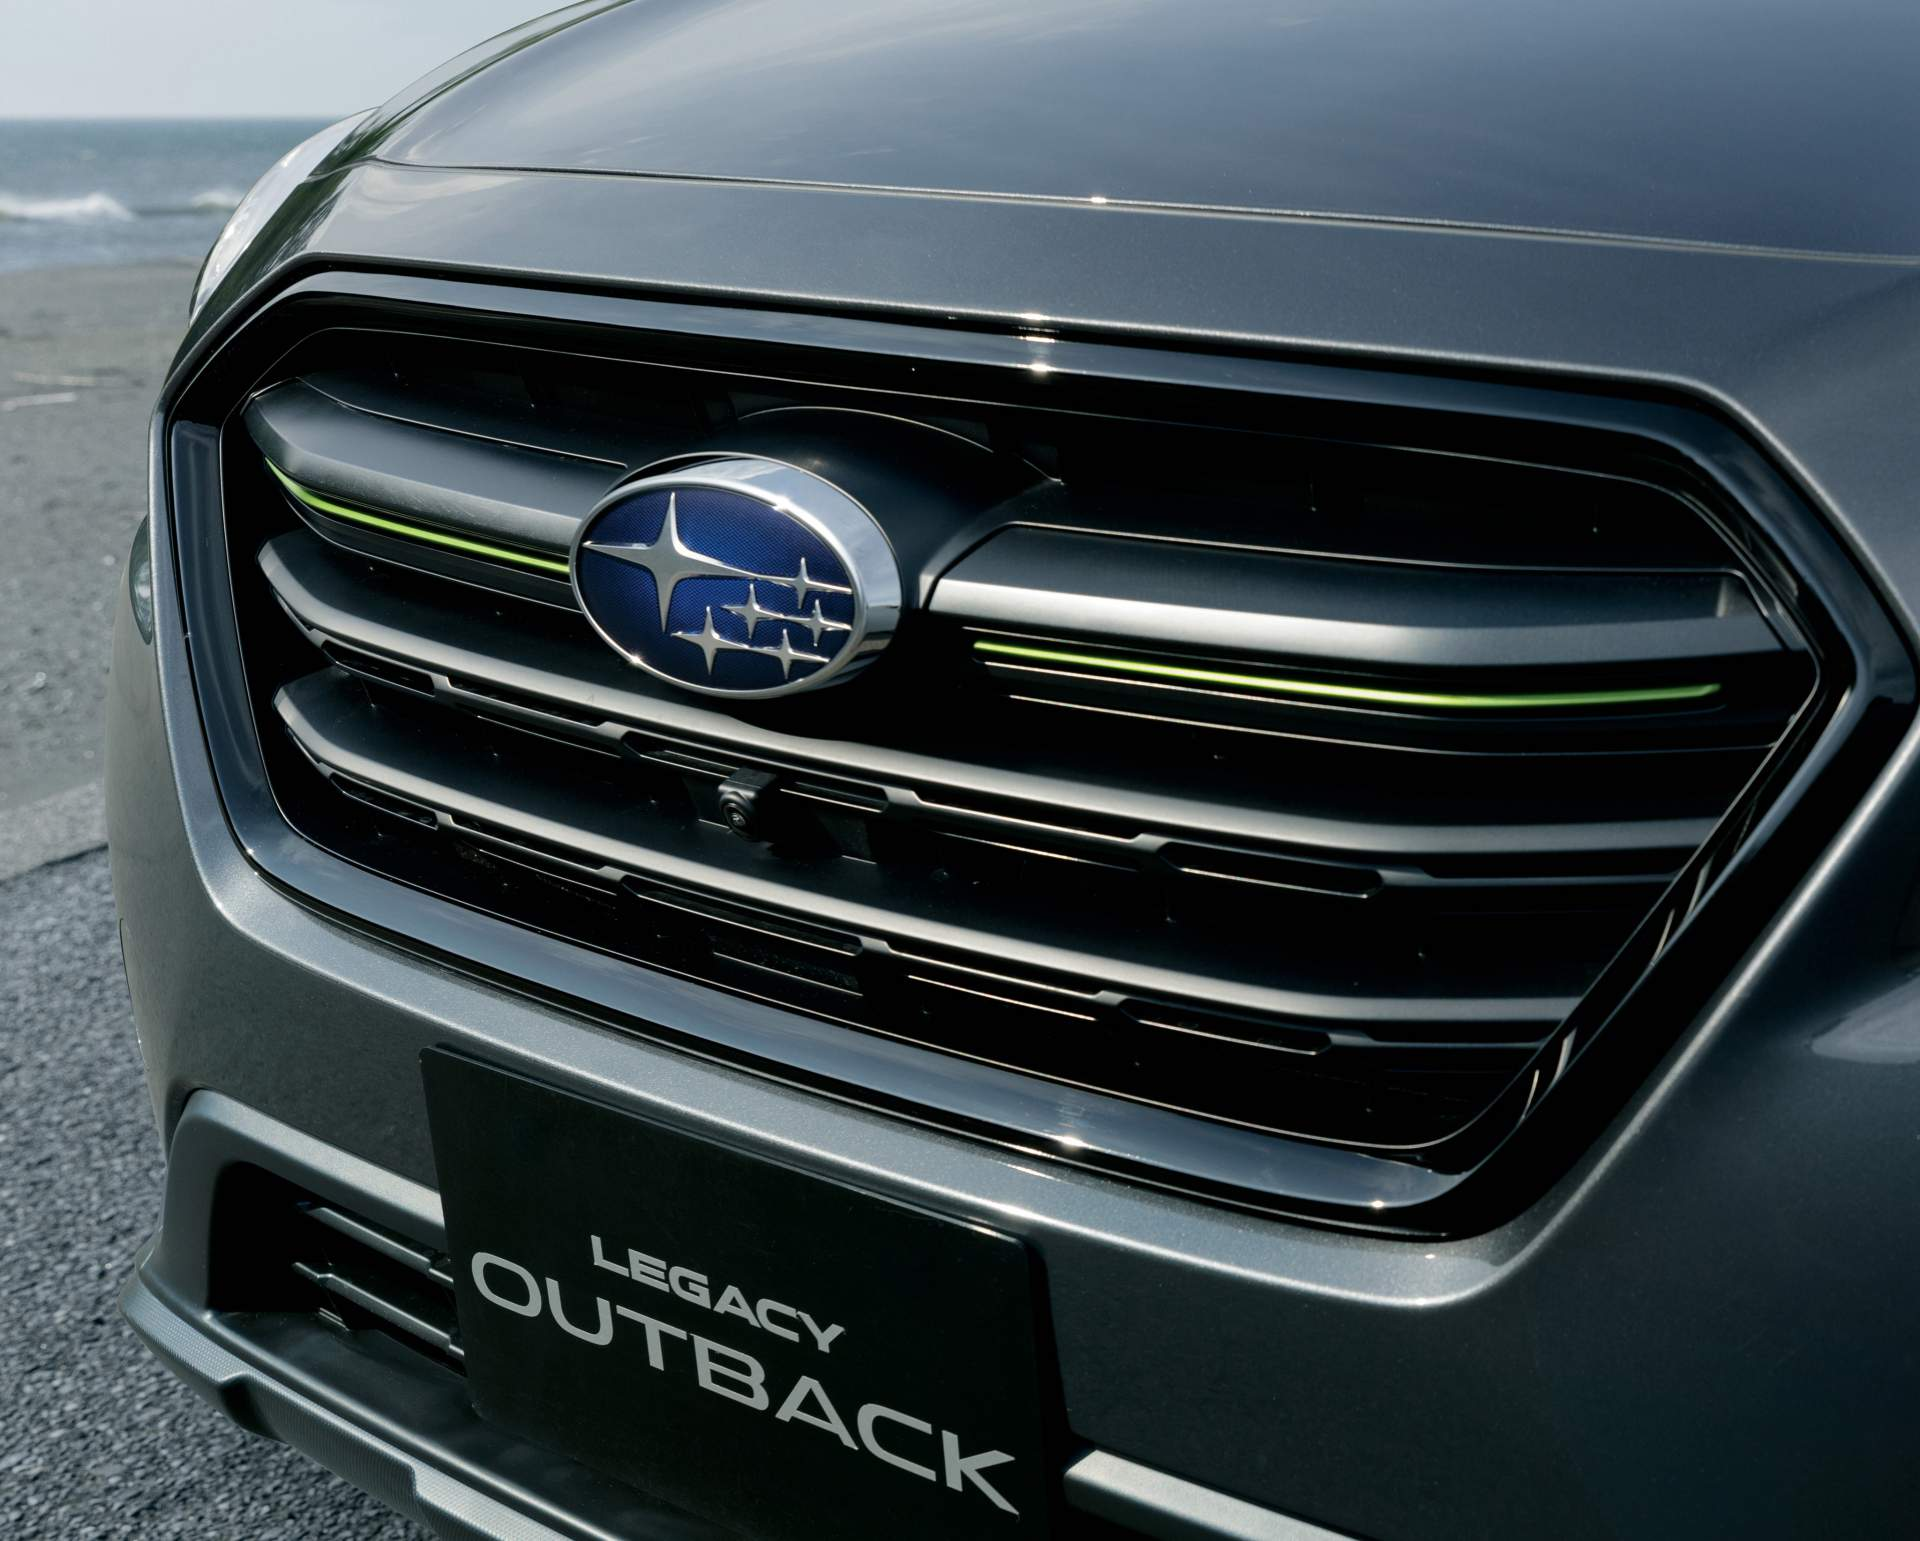 subaru-outback-x-break-dac-biet-3.jpeg